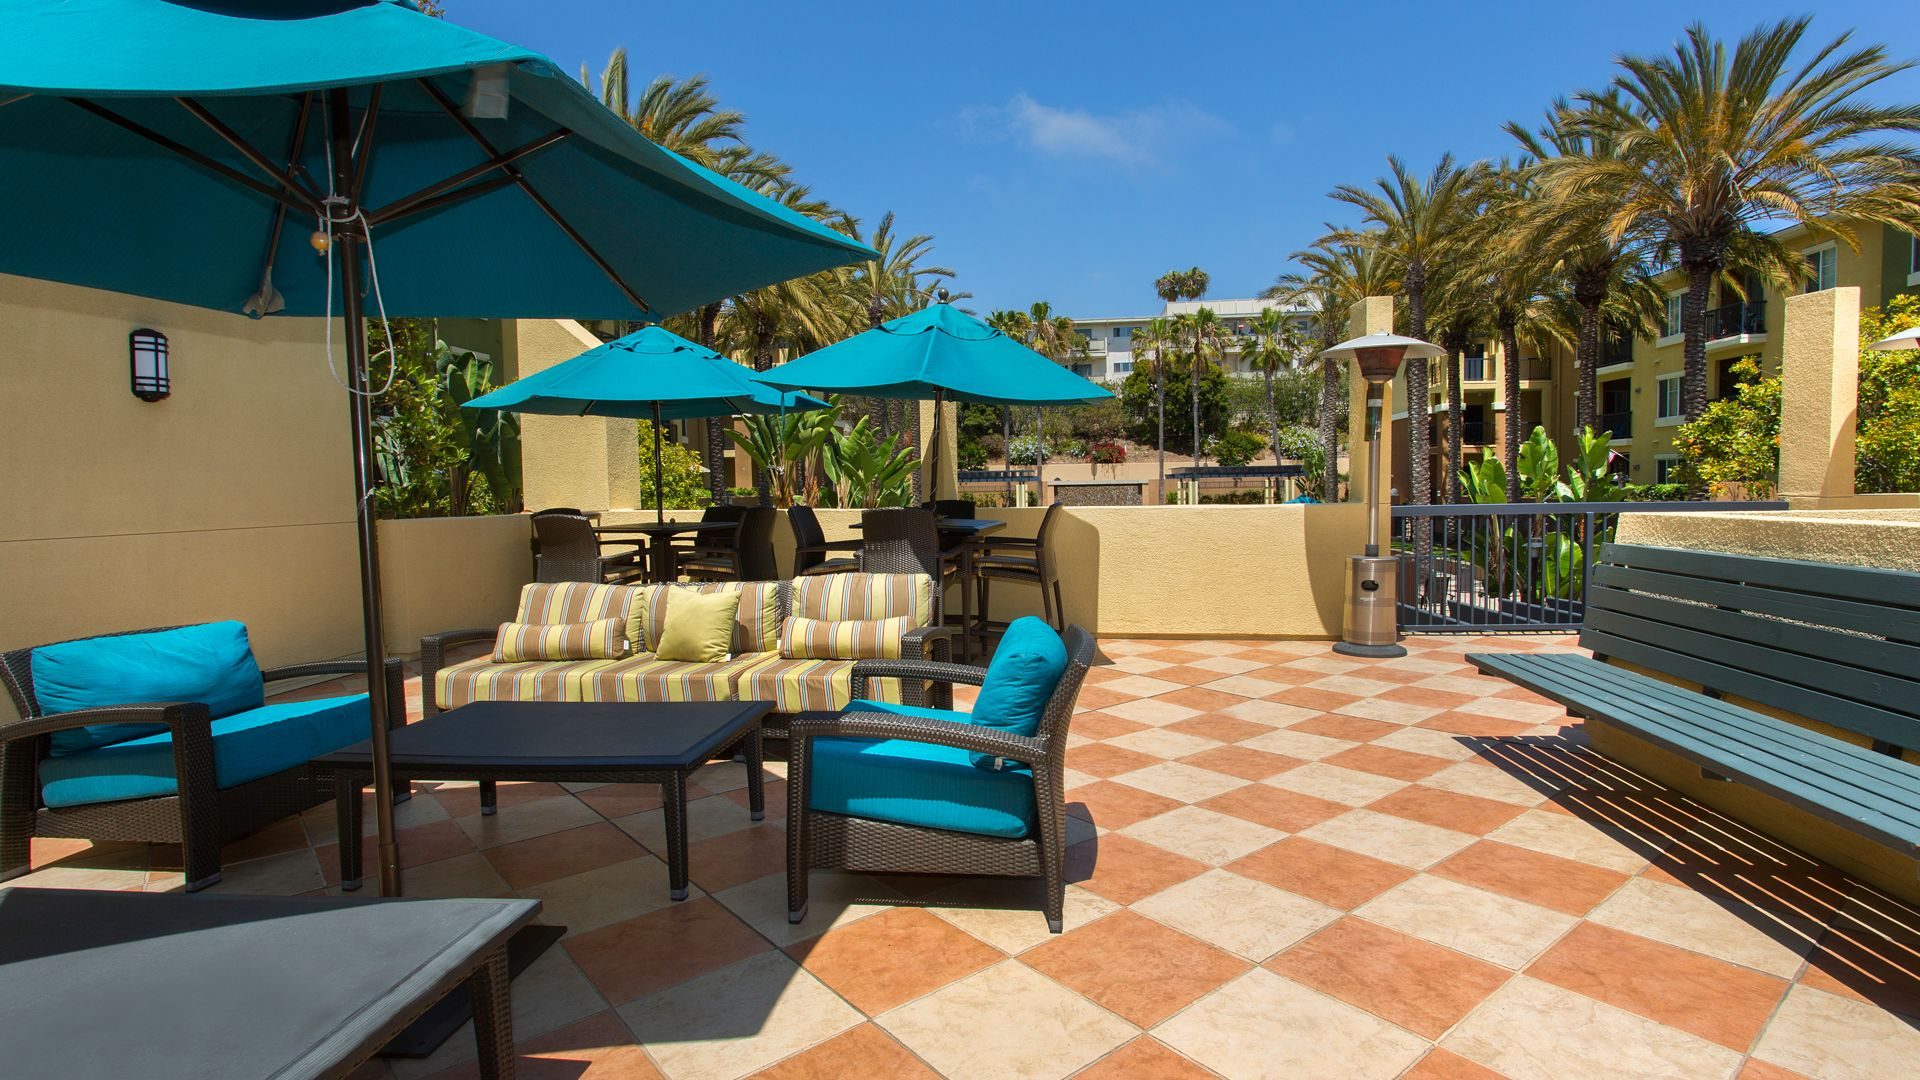 Mariposa at Playa del Rey Apartments - Sun Deck